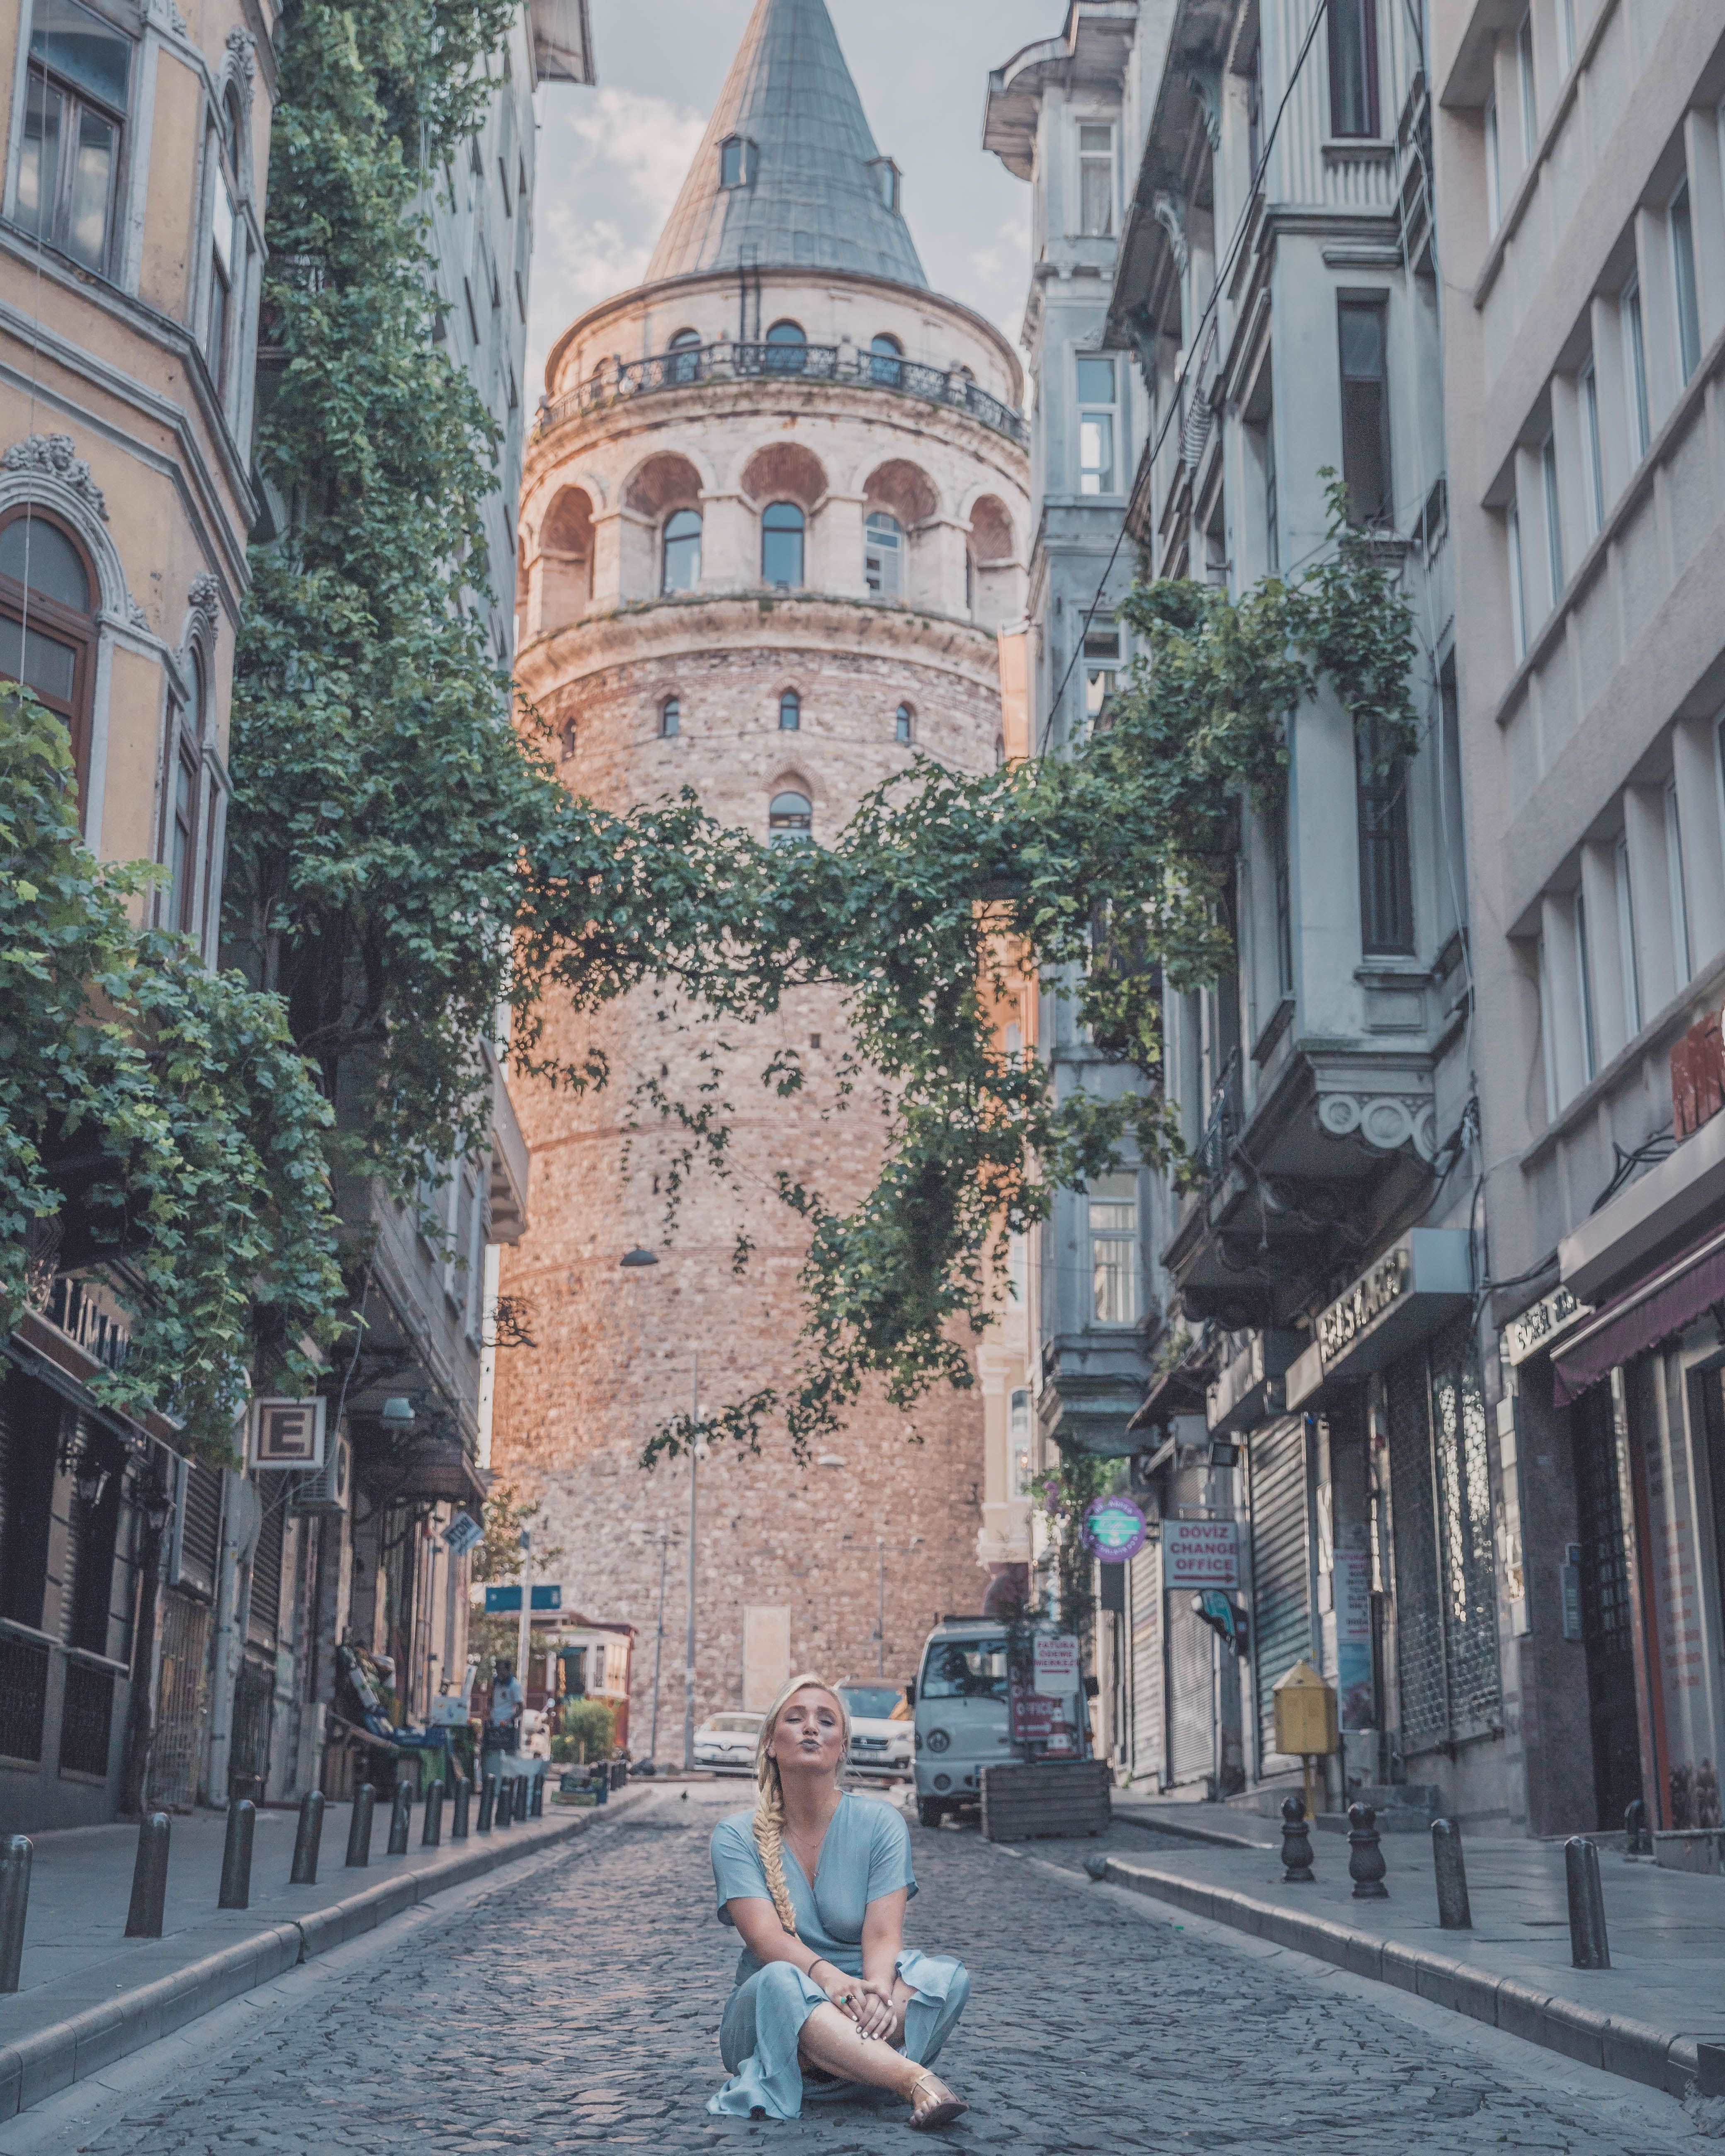 The Most Instagrammable Places in Turkey - Charlies Wanderings